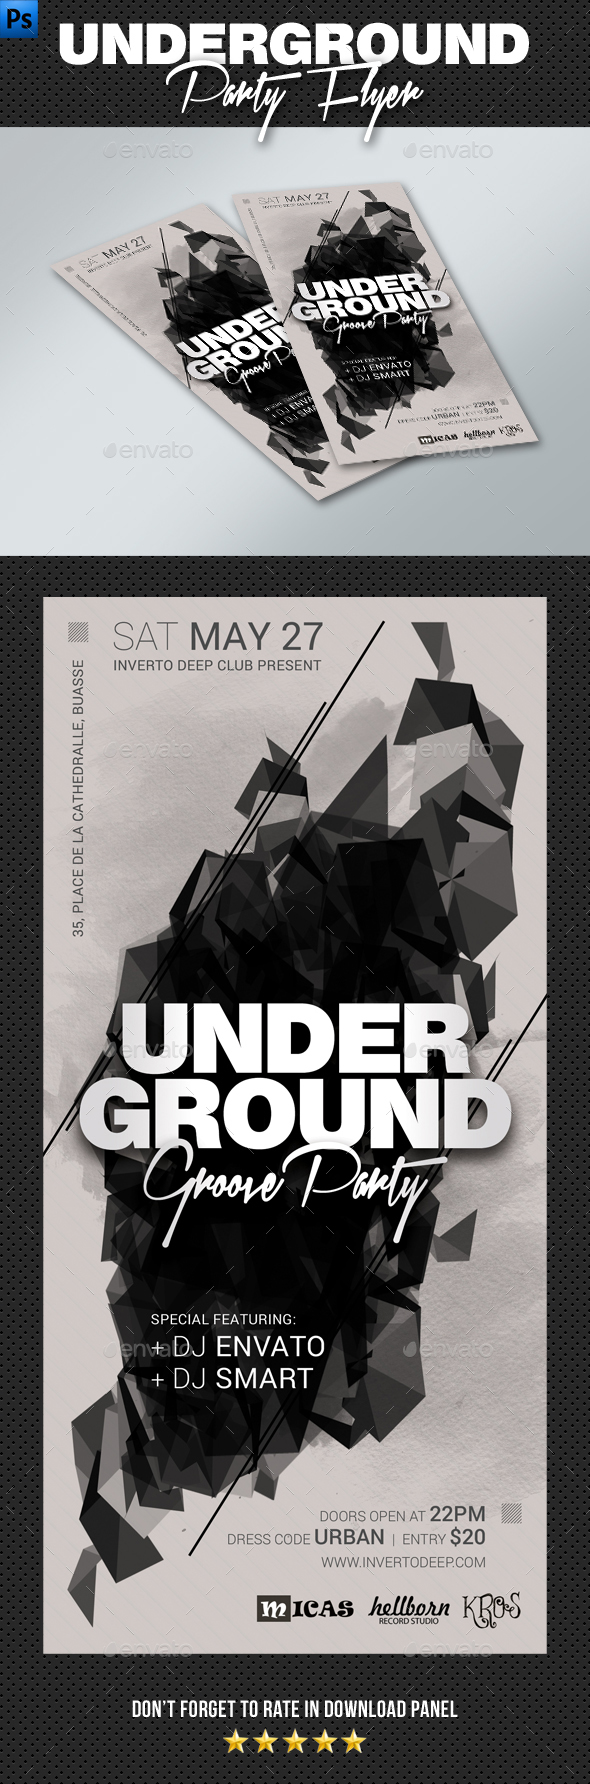 DL Underground Groove Flyer - Clubs & Parties Events